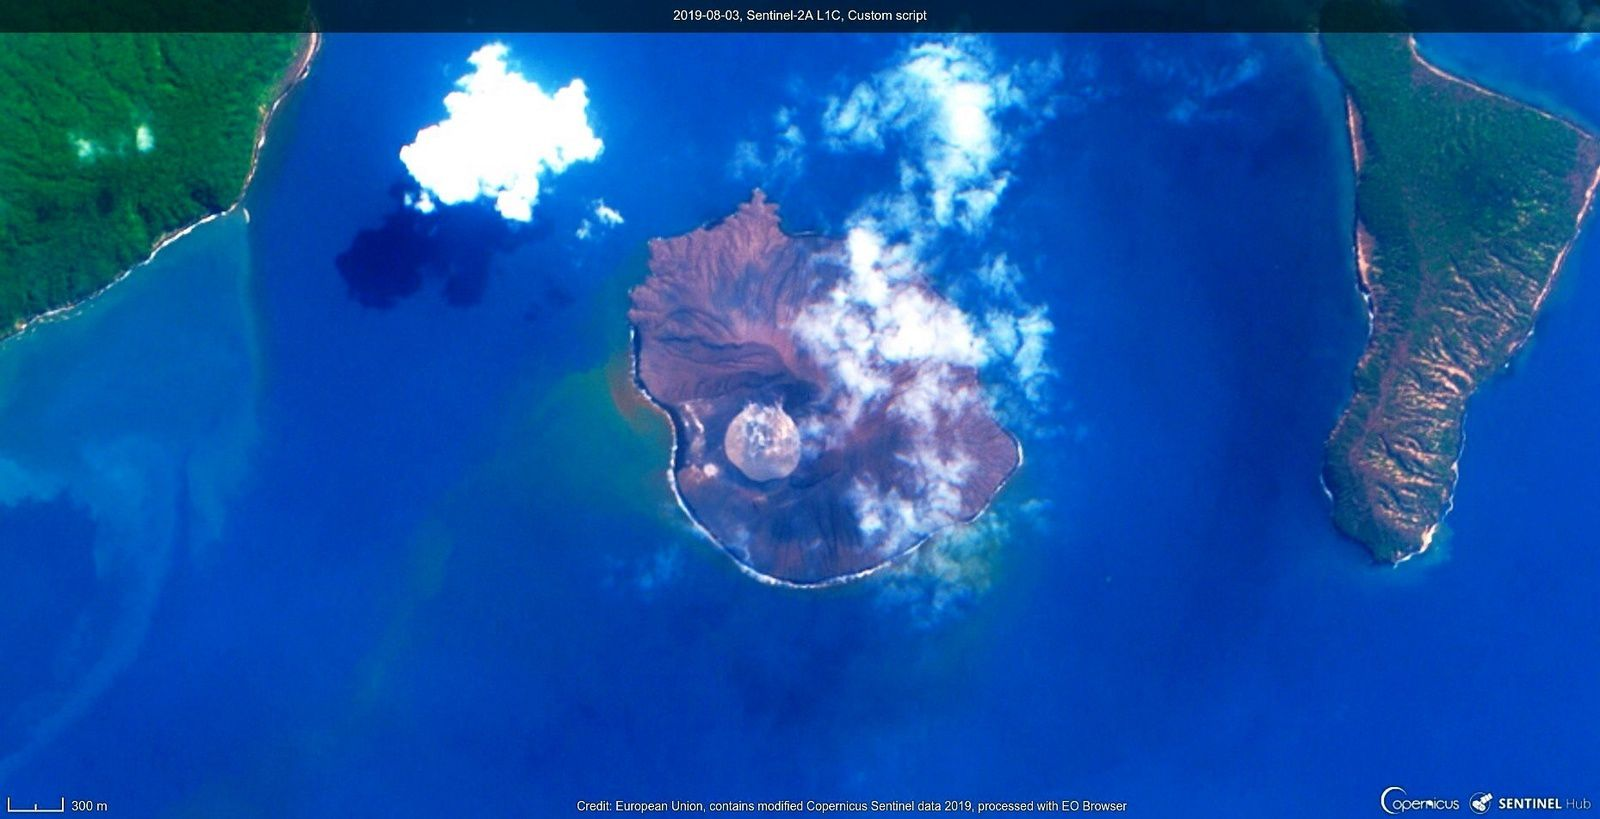 Anak Krakatau - Sentinel 2A L1C custom script from 03.08.2019 / in the day - Doc.Copernicus